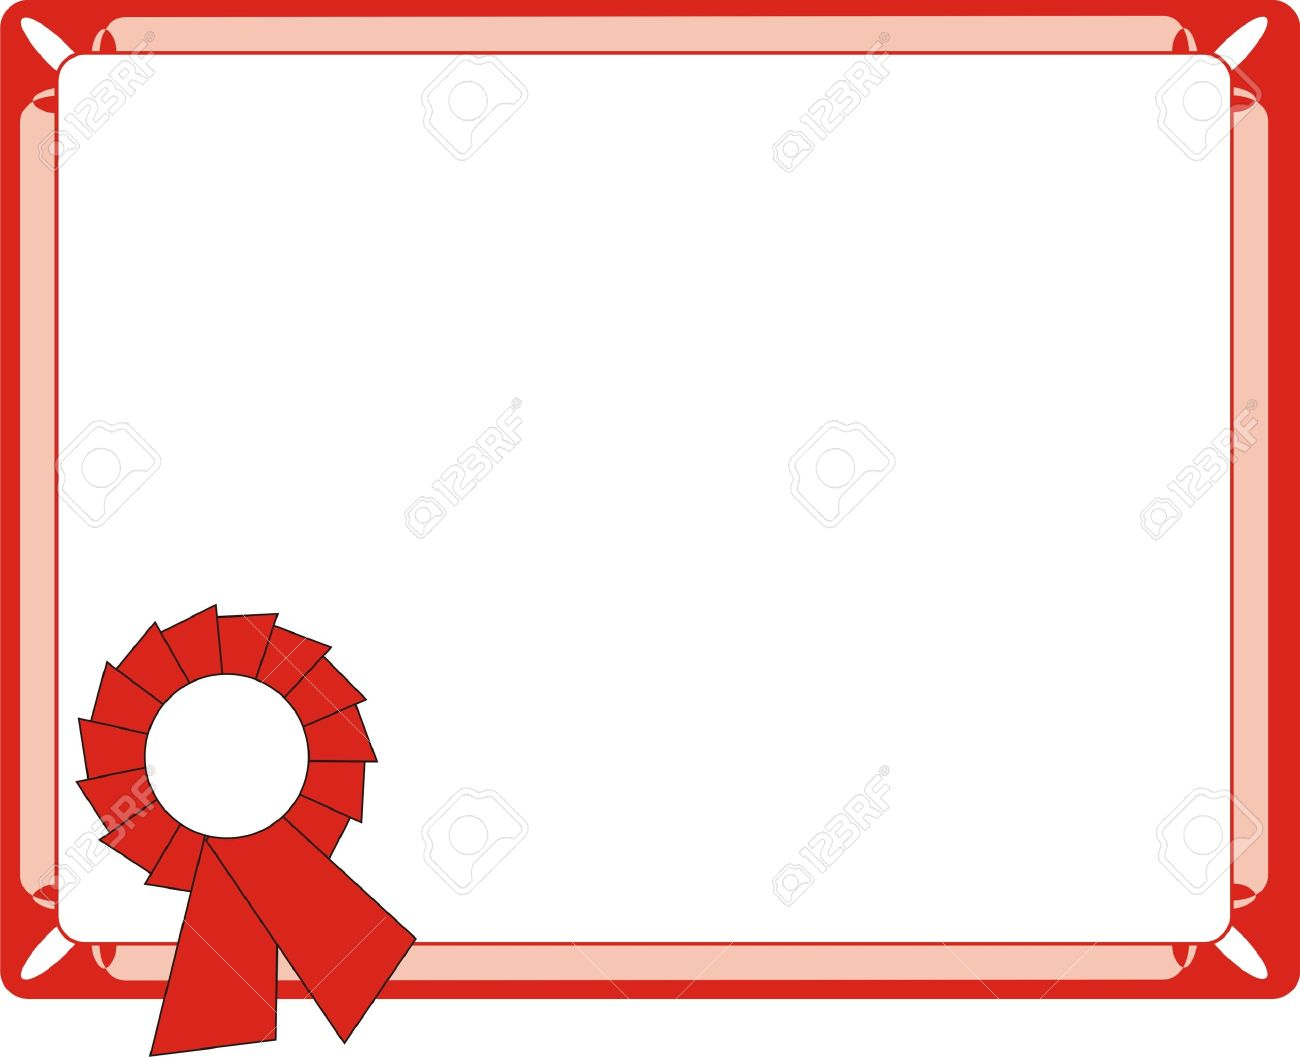 blank red certificate on letter format royalty free cliparts rh 123rf com vector certificate borders free download certificate border vector download